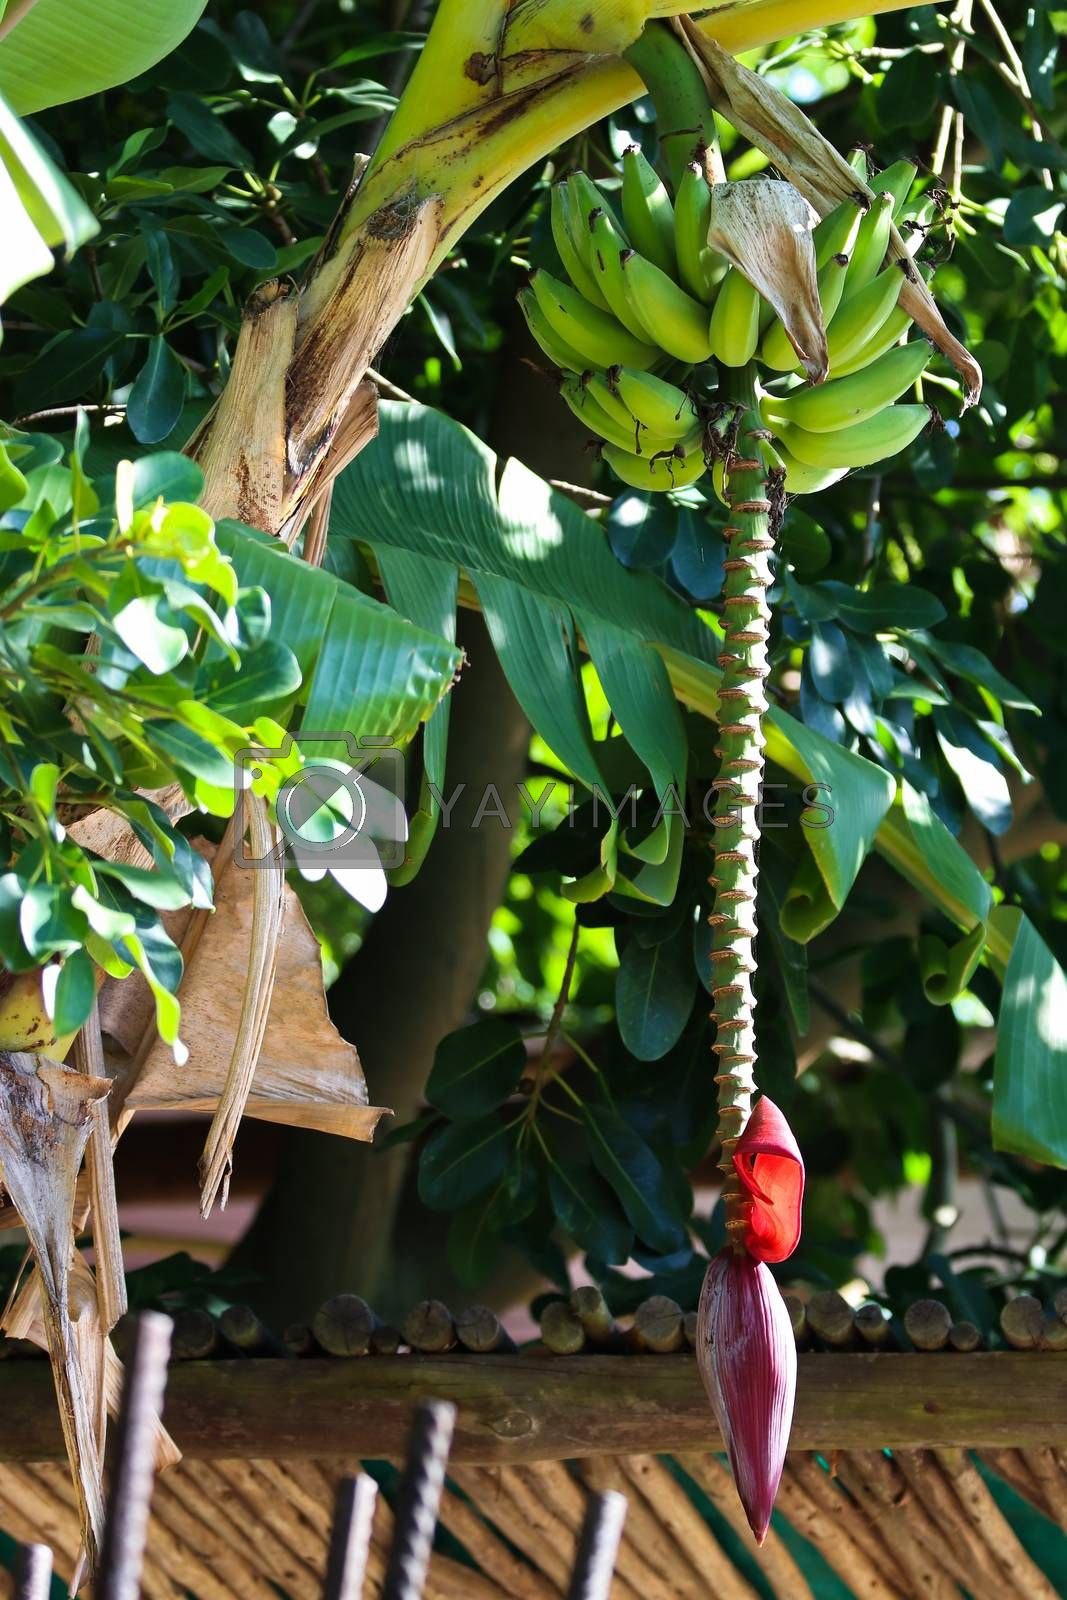 A banana palm tree fruit stalk (Musa acuminata) hanging from palm with some bananas, Wilderness, South Africa